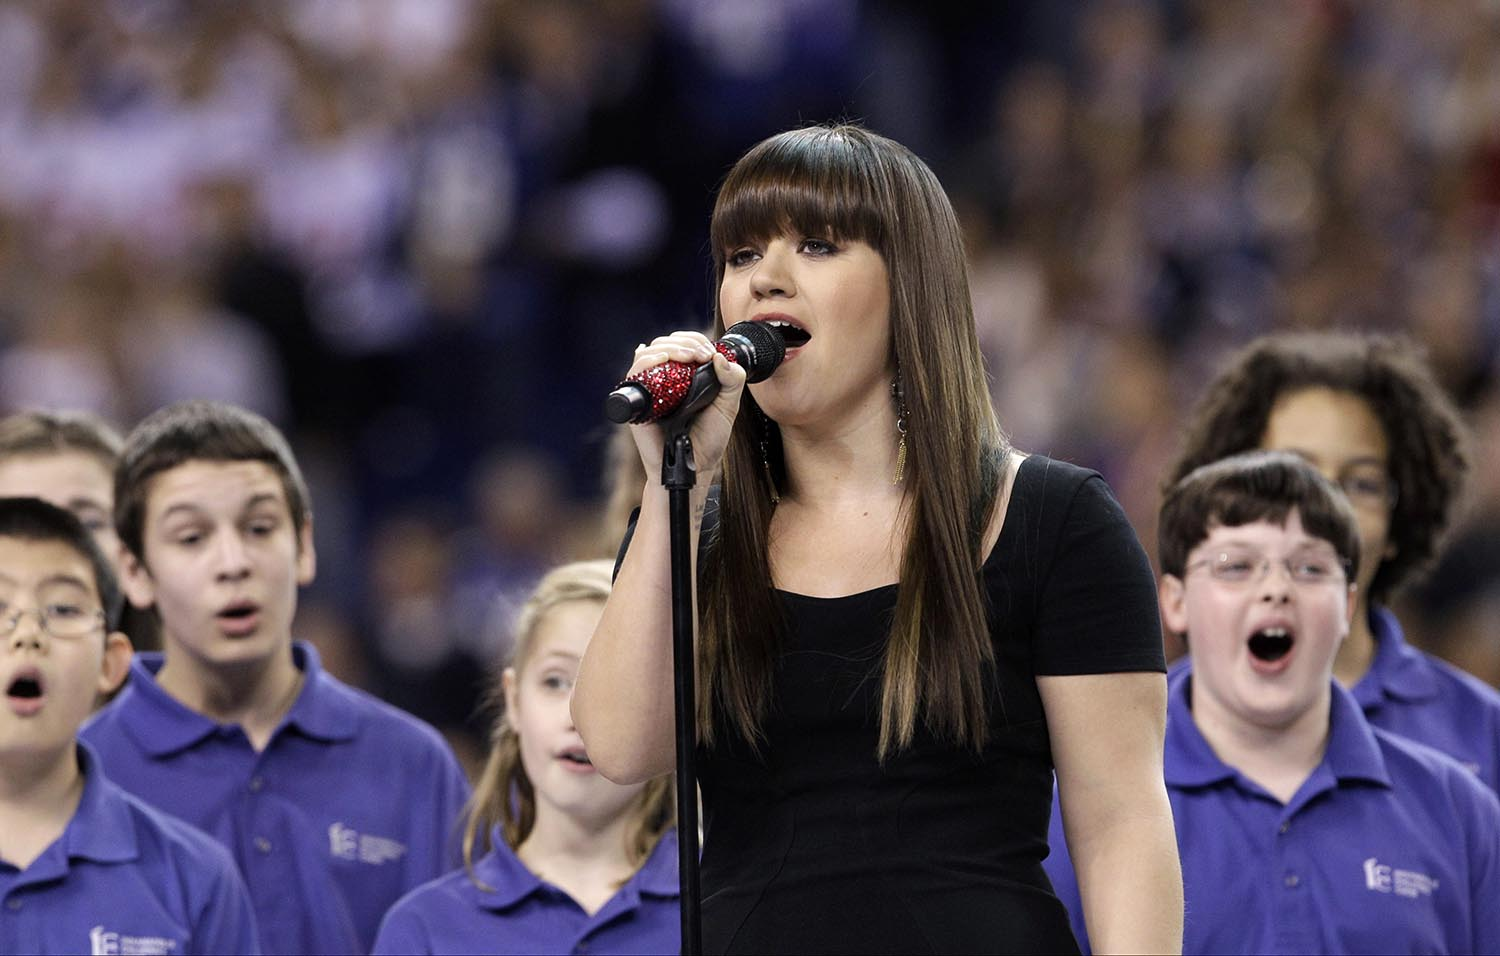 "<div class=""meta image-caption""><div class=""origin-logo origin-image ap""><span>AP</span></div><span class=""caption-text"">2012: Kelly Clarkson sings the national anthem before the NFL Super Bowl XLVI football game between the New York Giants and the New England Patriots on Feb. 5, 2012. (AP Photo/David J. Phillip)</span></div>"